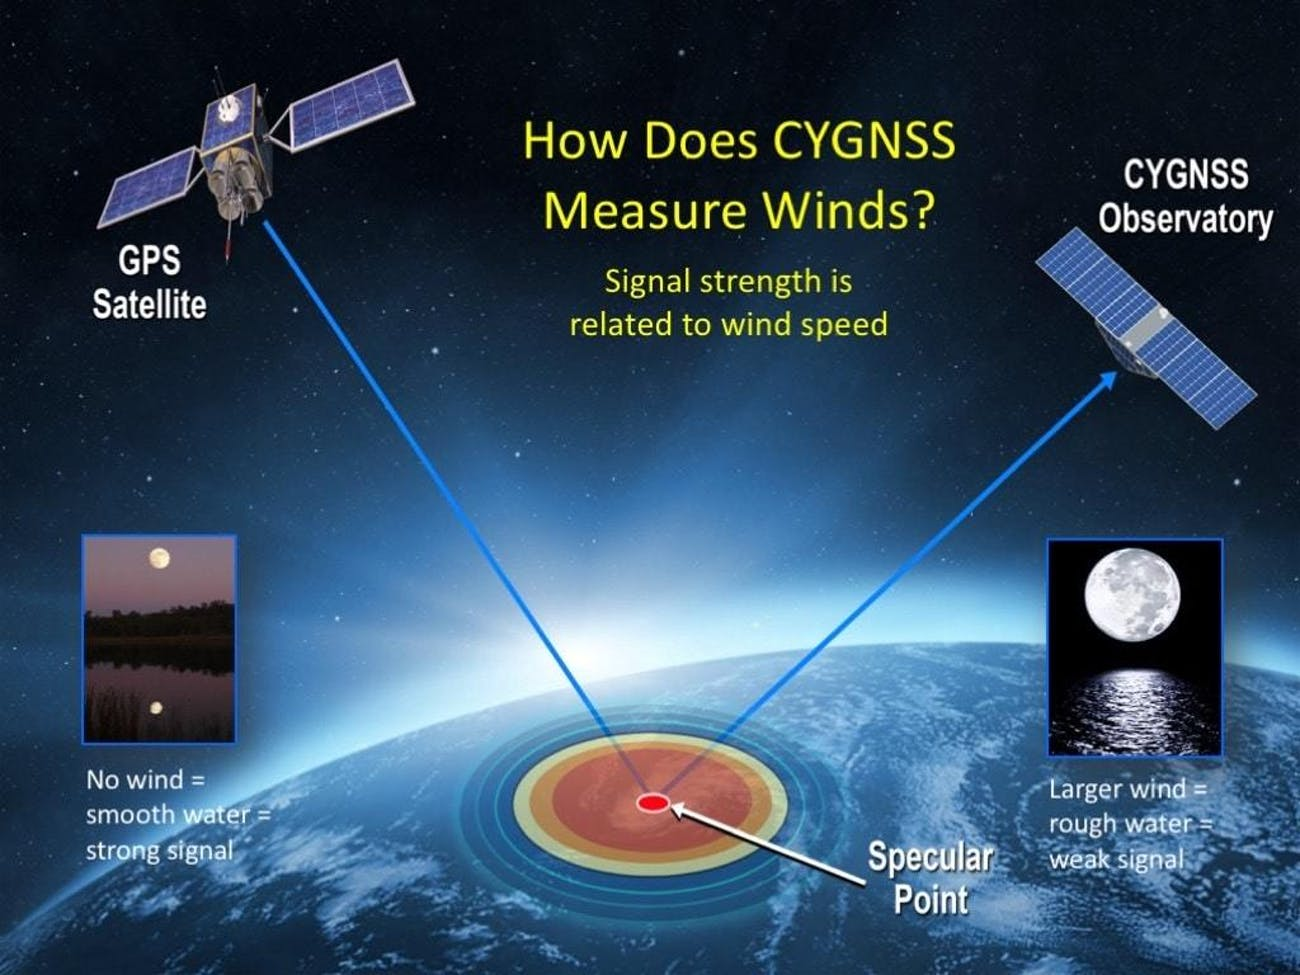 CYGNSS will measure surface wind speeds to determine how intense a storm is.